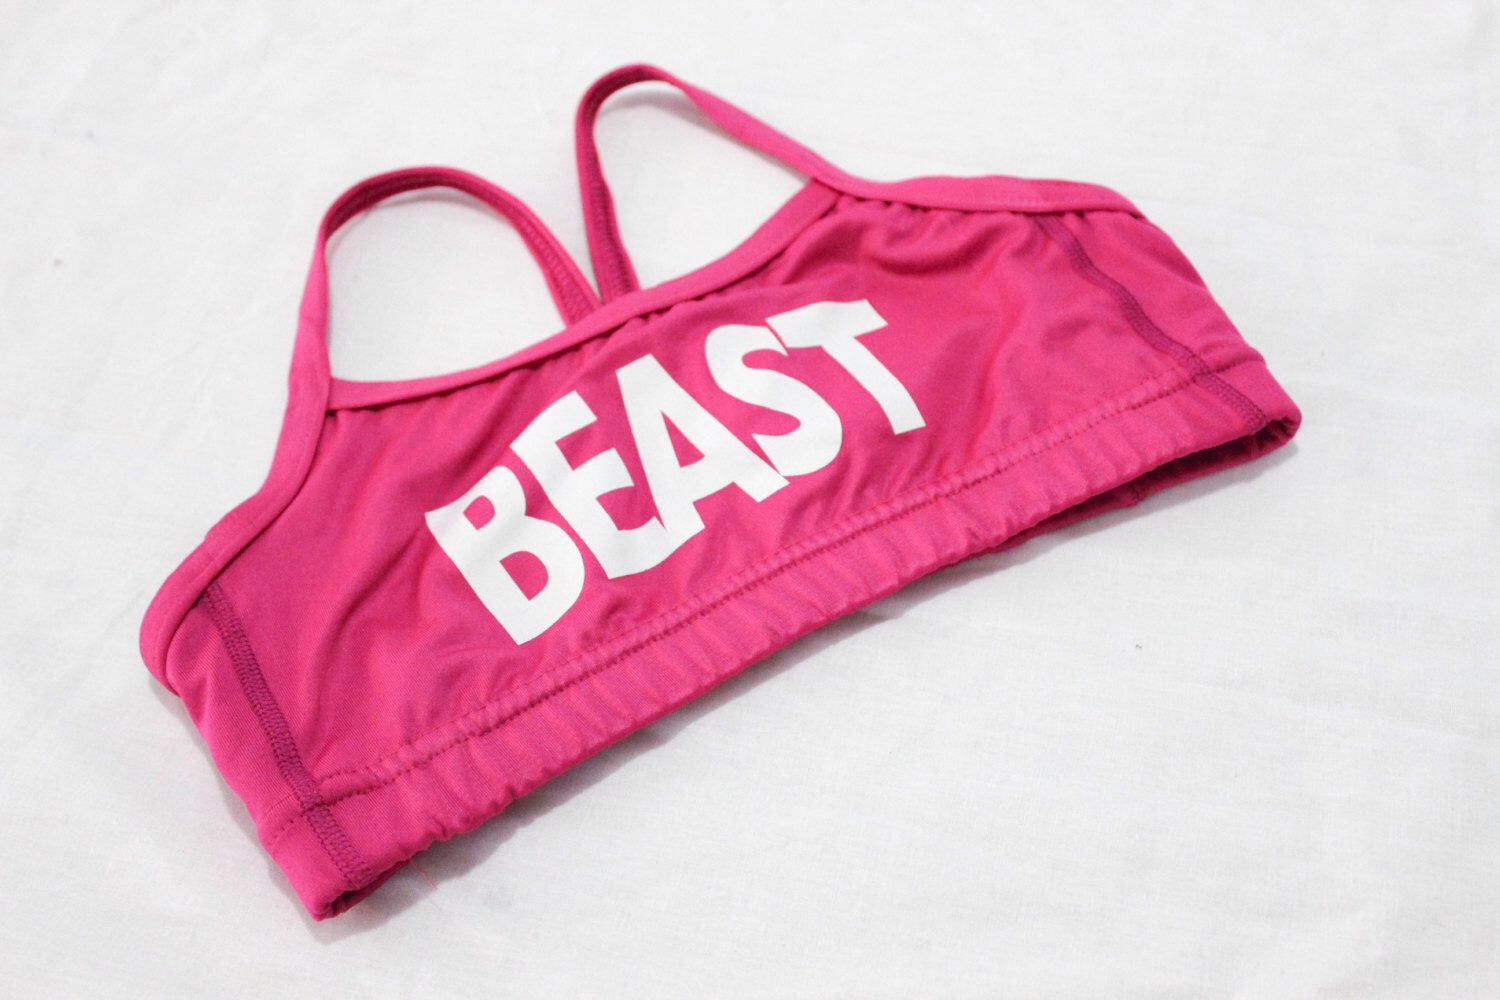 Womens Reversible Sports Bra. Womens Reversible Beauty / Beast Sports Bra. This BRA is awesome! reversible Beauty / Beast design as pictured by SheSquatsClothing on Etsy https://www.etsy.com/listing/222581343/womens-reversible-sports-bra-womens